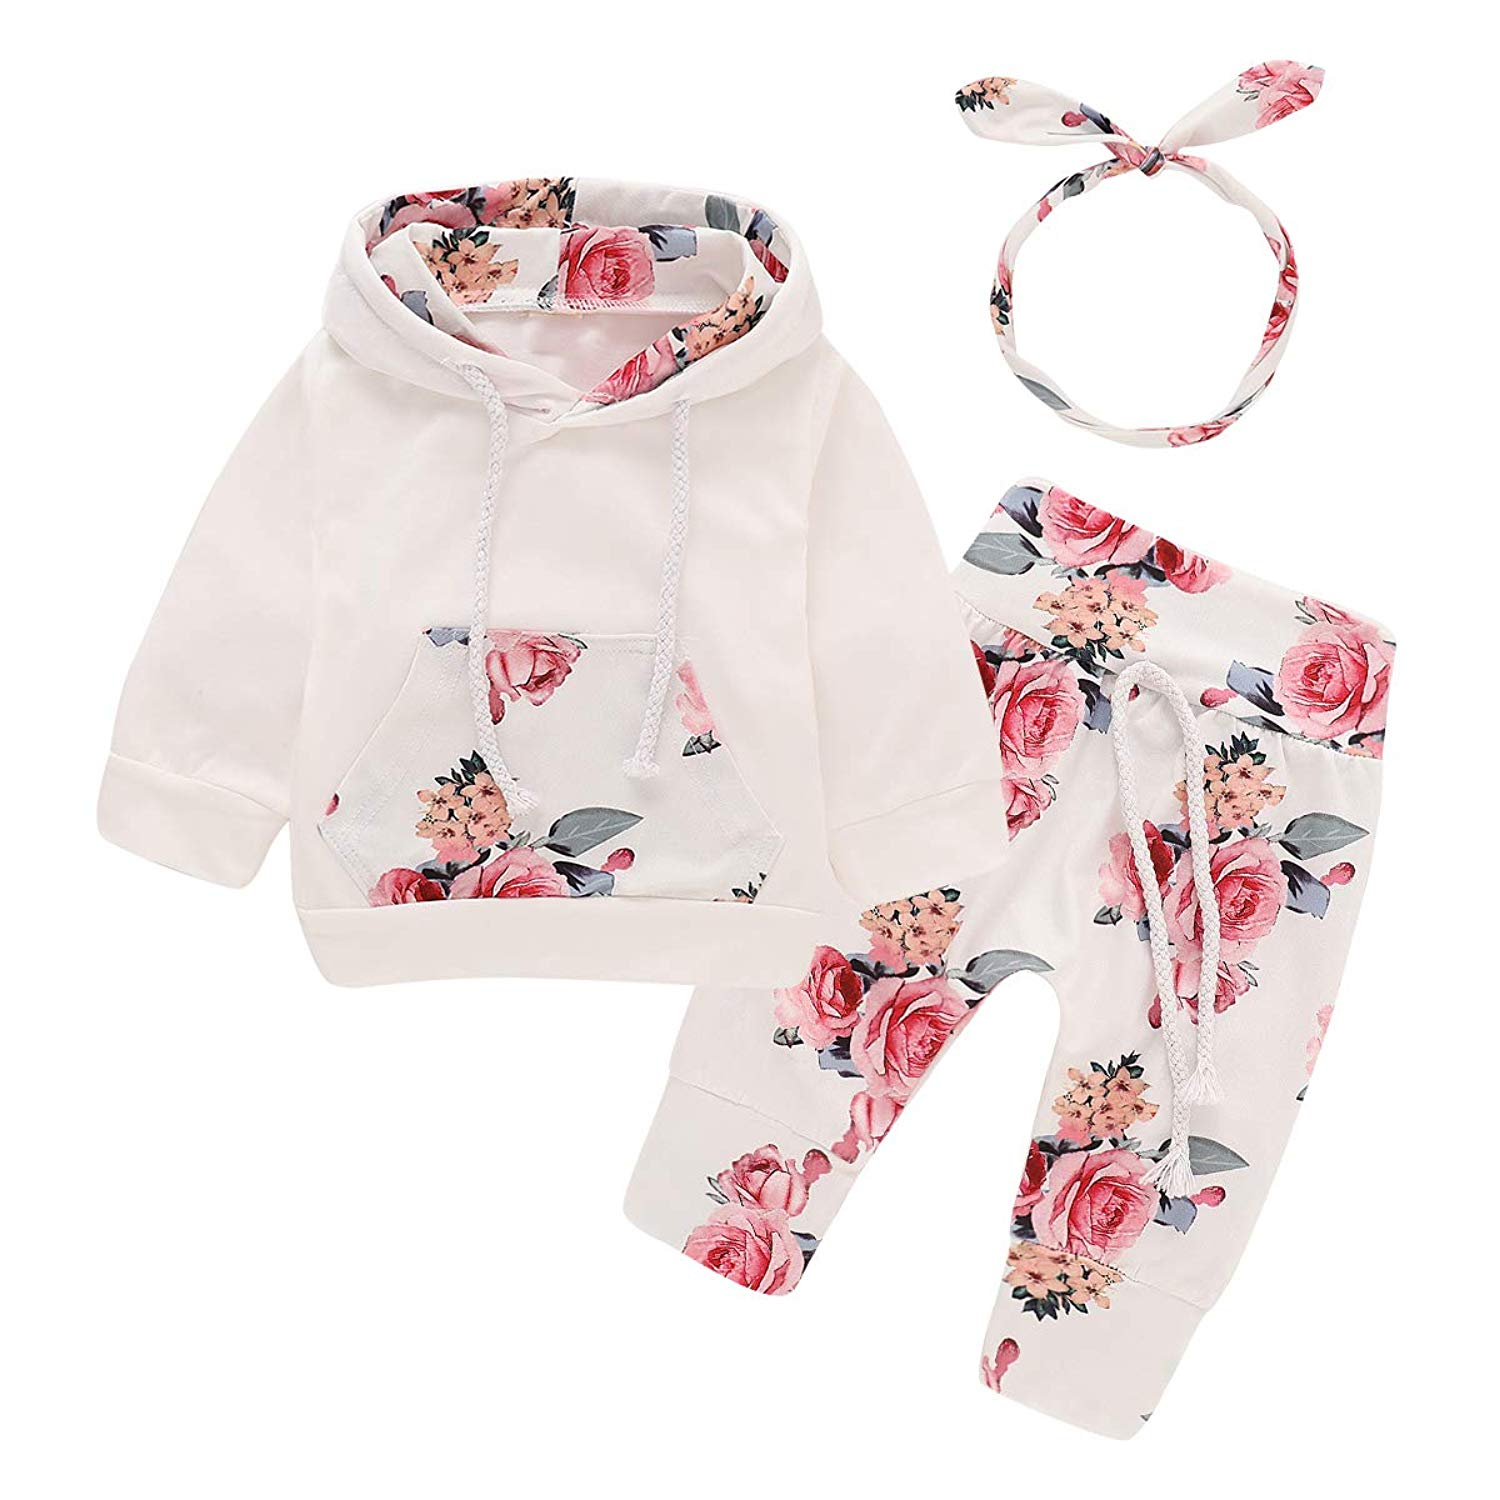 puseky Newborn Baby Girl Floral Hoodie Shirt Tops+Pant+Headband 3Pcs Tracksuit Outfit